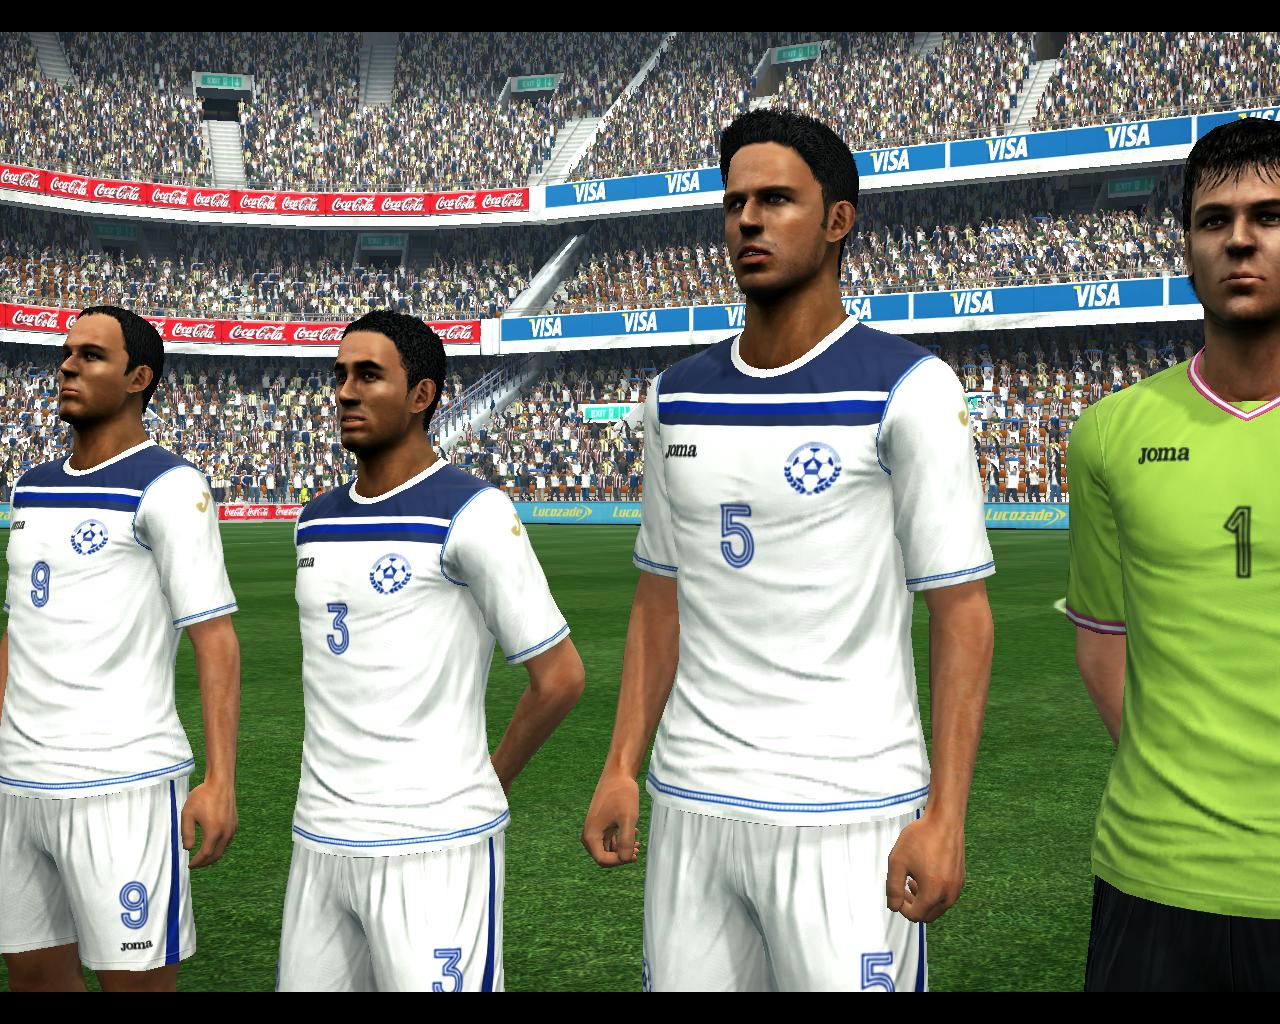 All national teams patch pes 2017 download